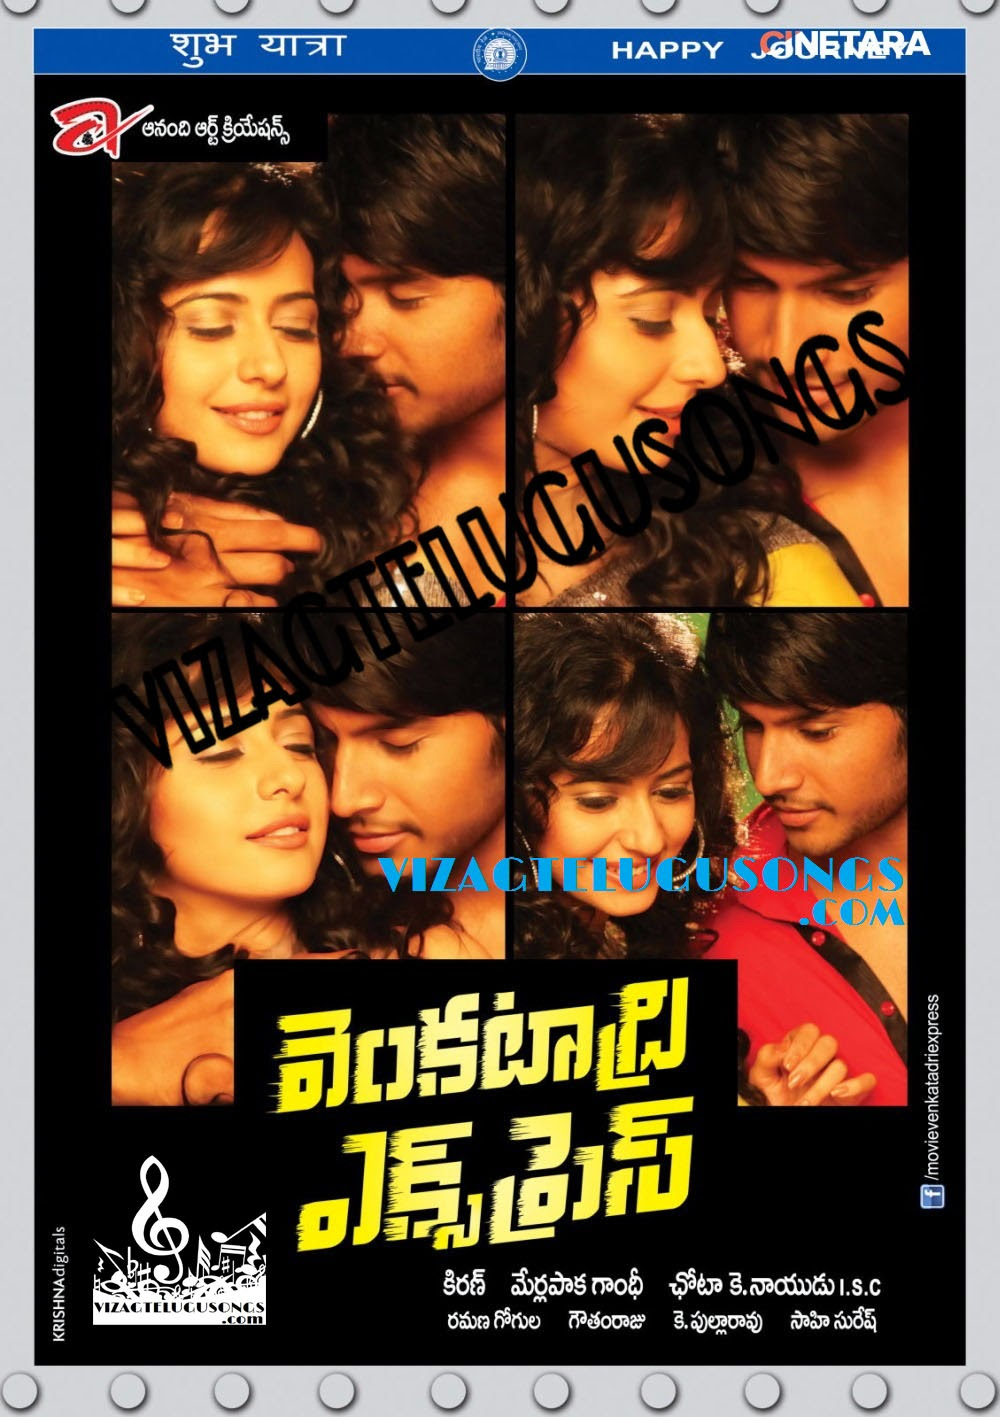 Venkatadri Express (2013) Telugu Mp3 Songs - First On Net